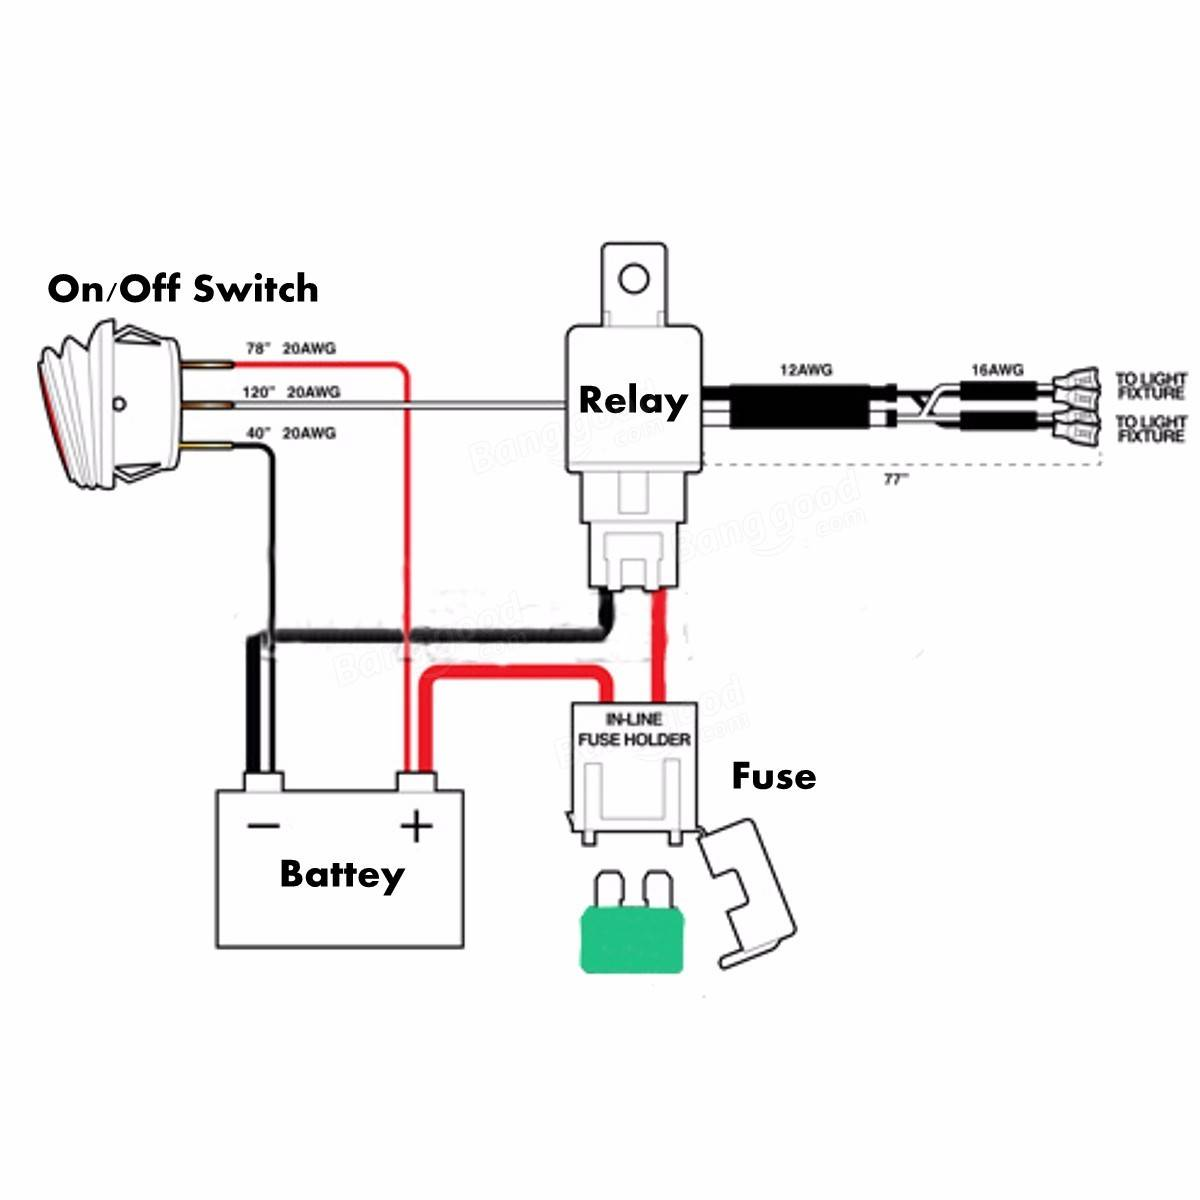 wiring diagram for a warn winch with 12 Volt Relay Switch Diagram on Downloadable manuals likewise Polaris Snowmobile Wiring Diagram furthermore Ramsey Winch Remote Wiring Diagram also Wiring Diagram Large Frame 3 Wire 2040 together with Superwinch Winch Wiring Diagram.